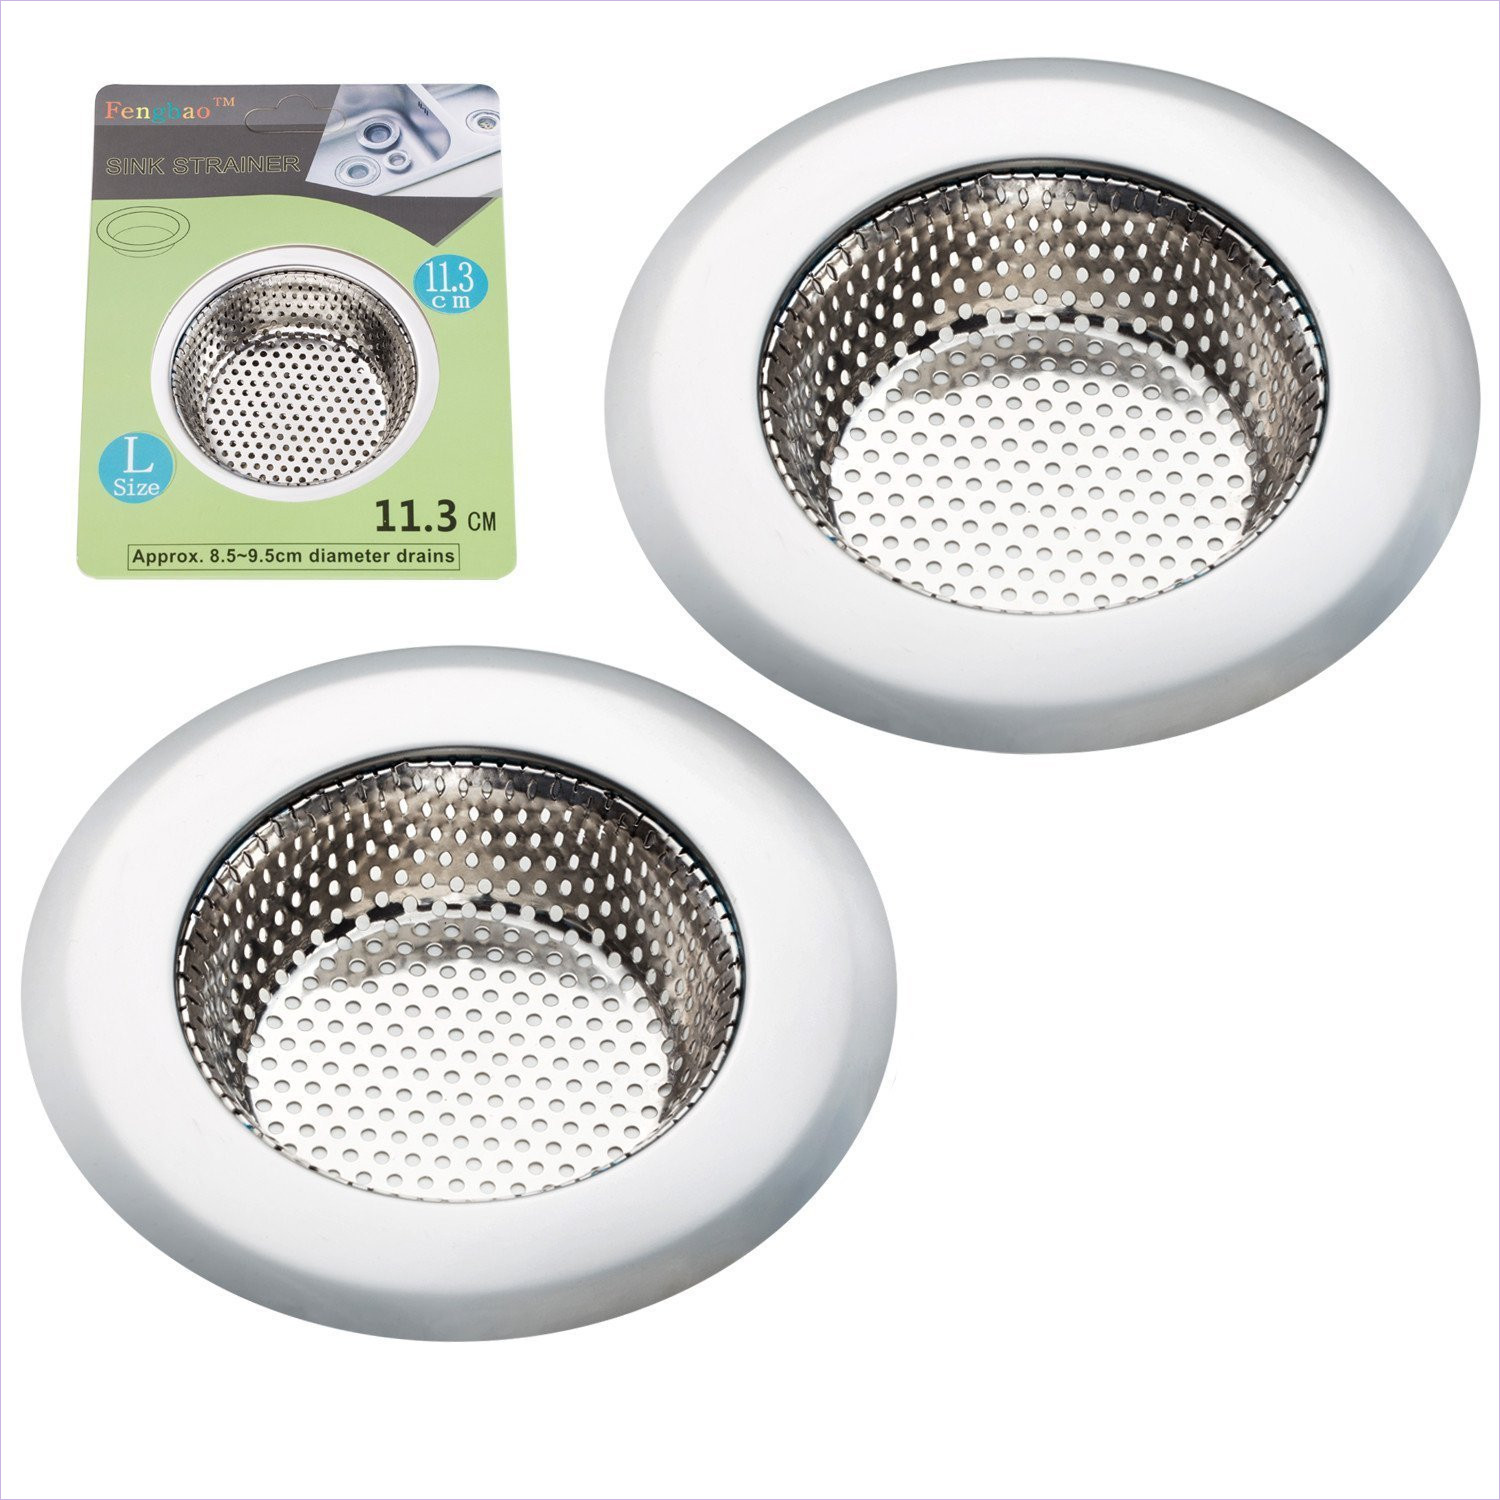 Fengbao 2 pcs Kitchen Sink Strainer